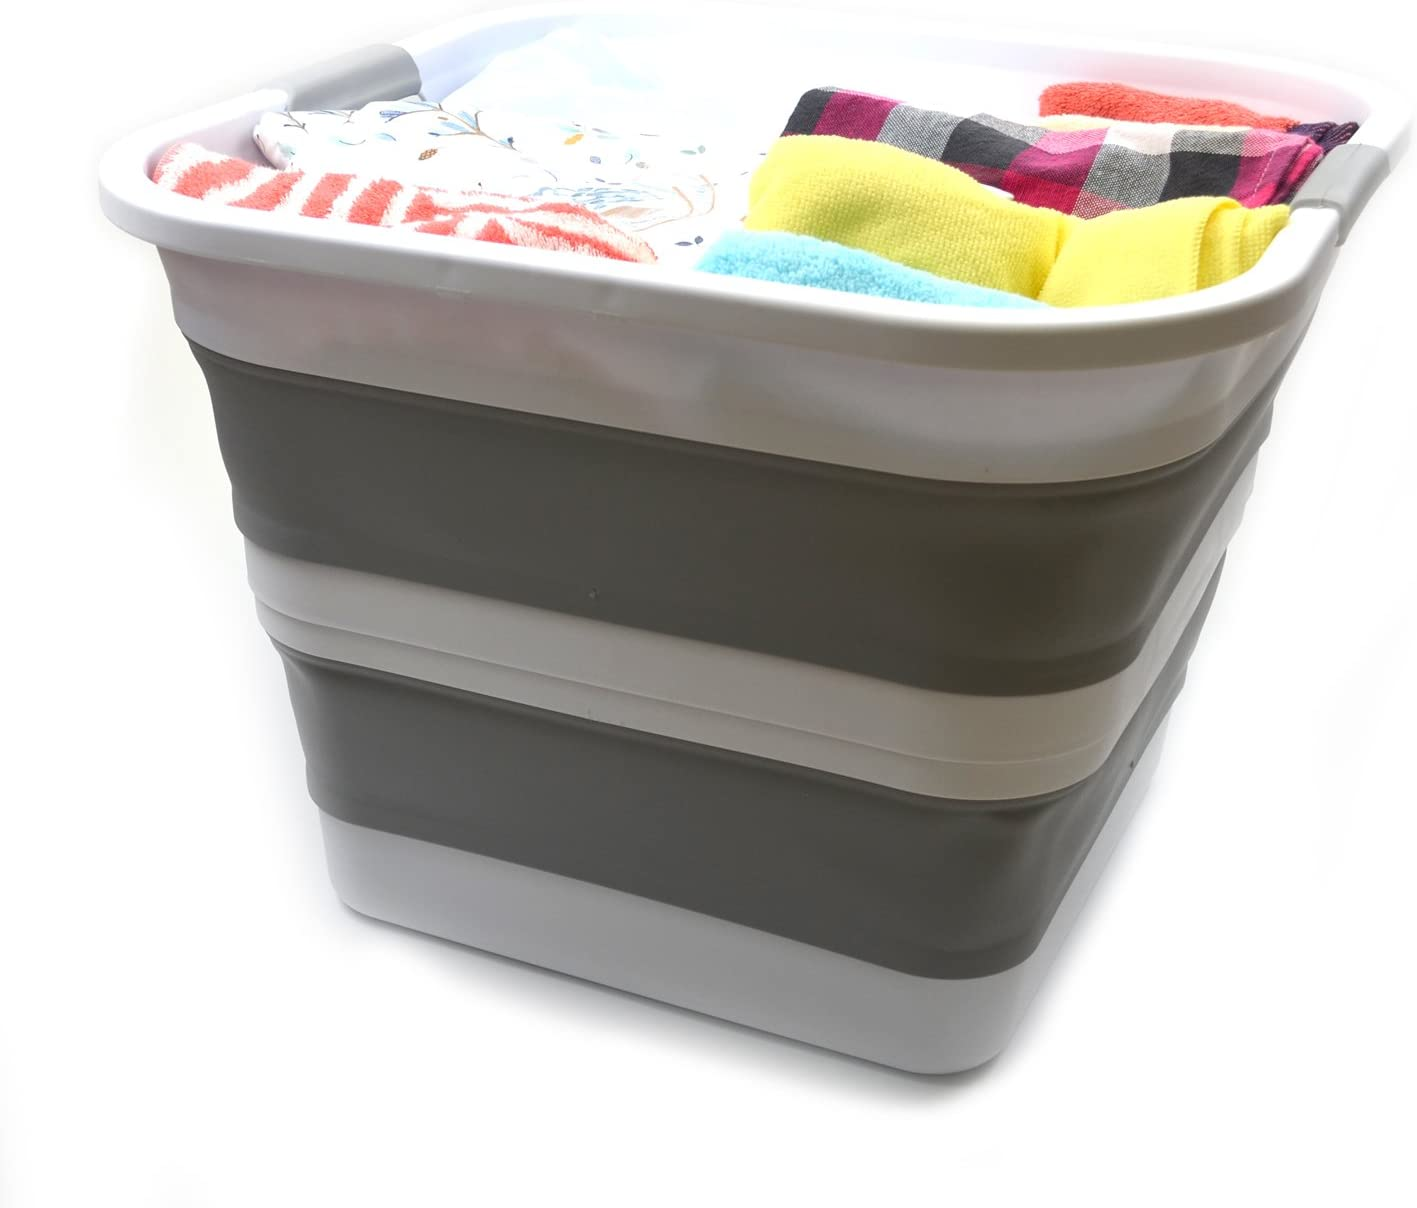 SAMMART Collapsible Plastic Max 69% OFF Ranking TOP5 Laundry Tub Square Basket -